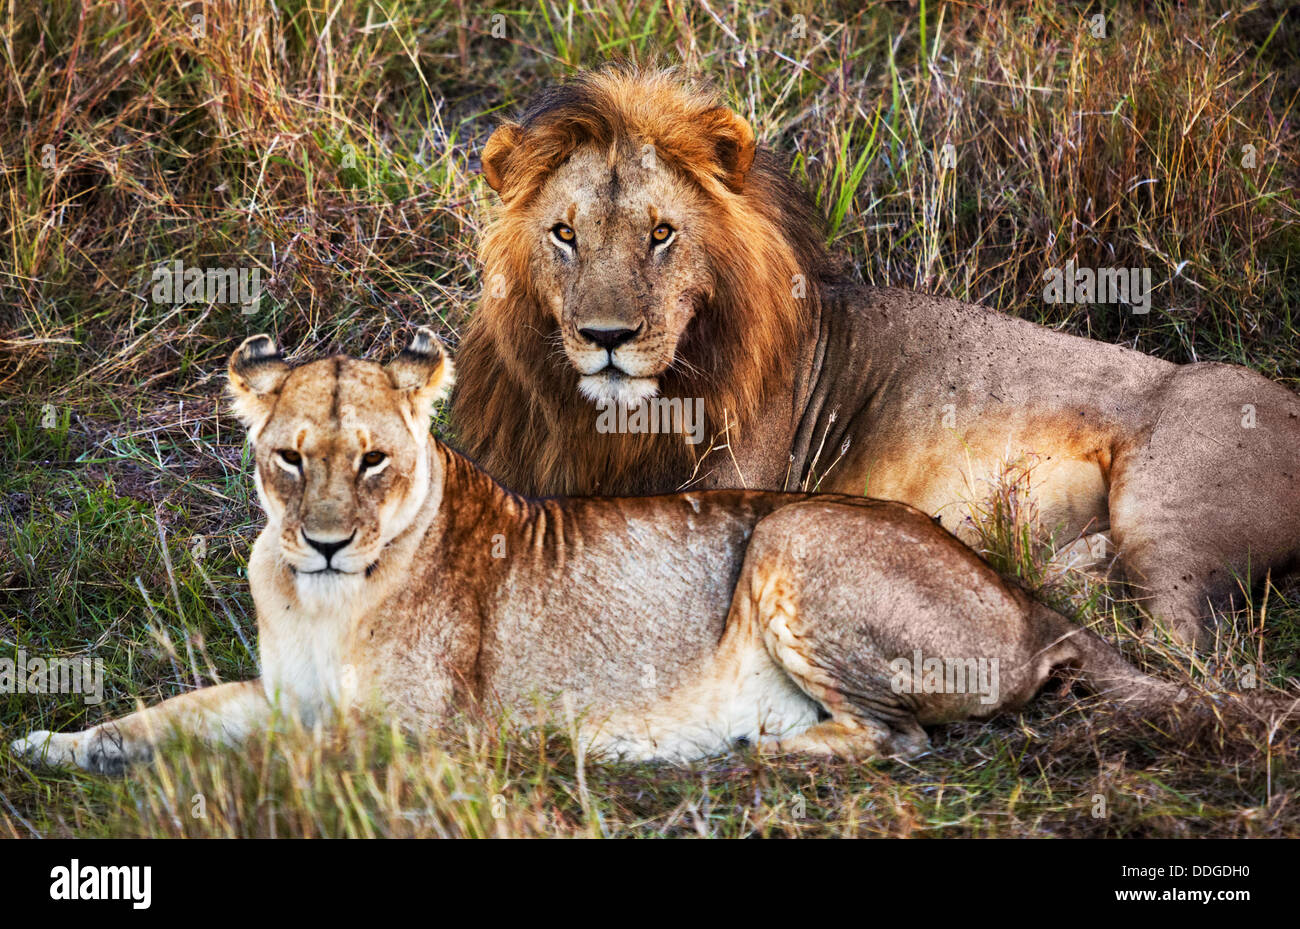 Male and female lion, couple, in the Serengeti National Park, Tanzania, Africa Stock Photo